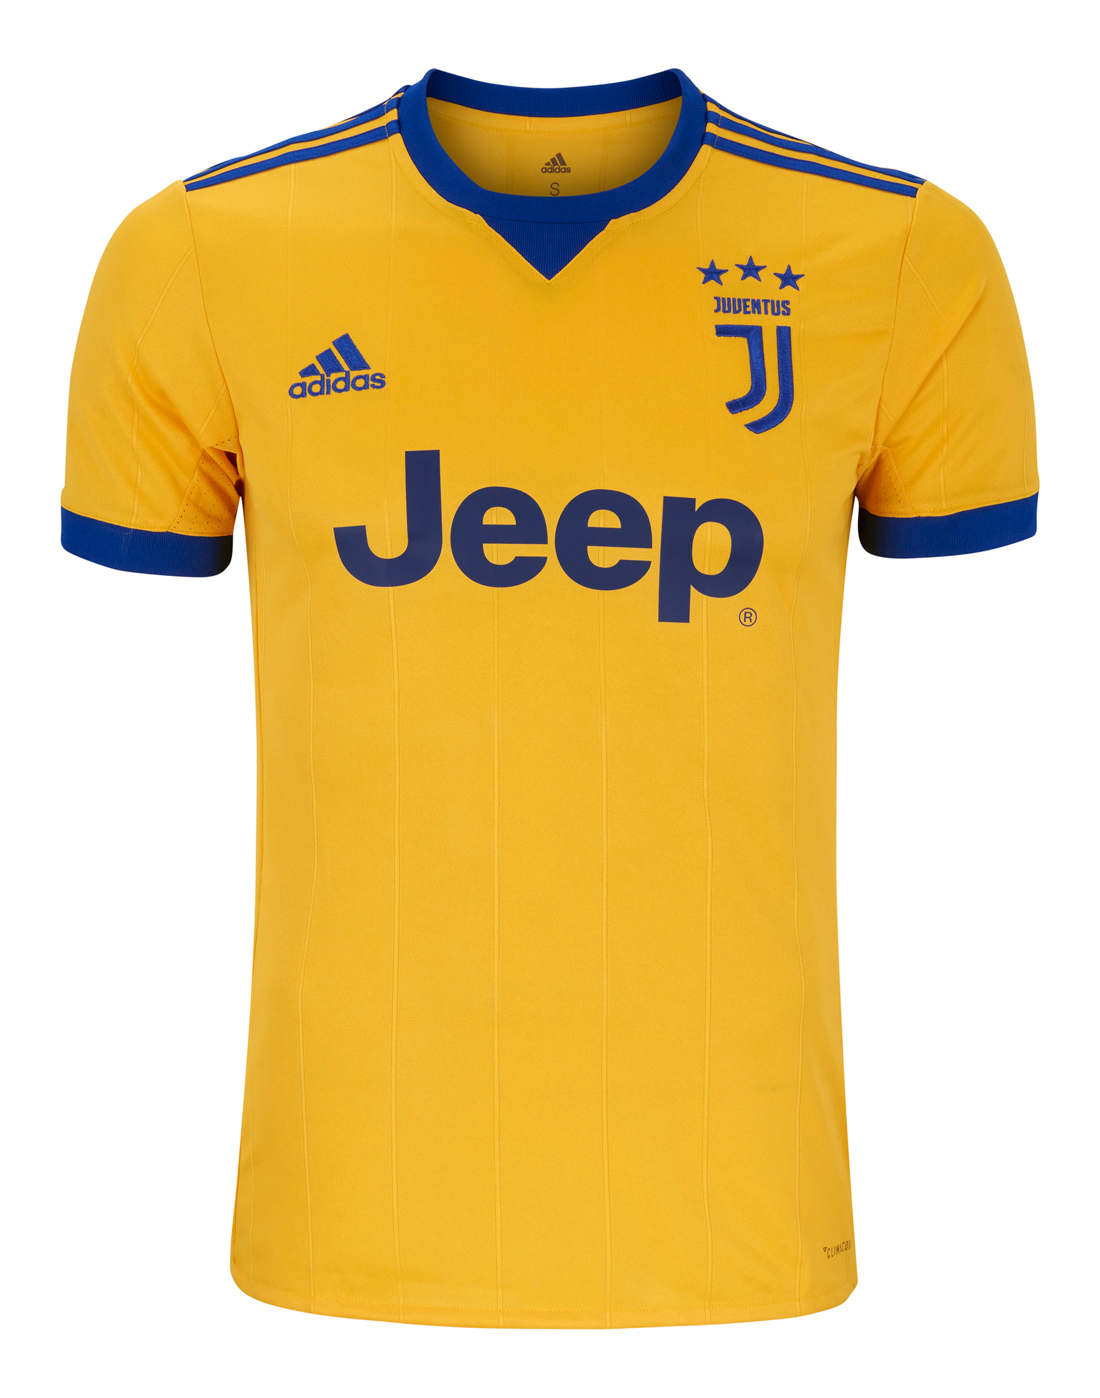 Adidas Adult Juventus 17 18 Away Jersey Yellow Life Style Sports Ie